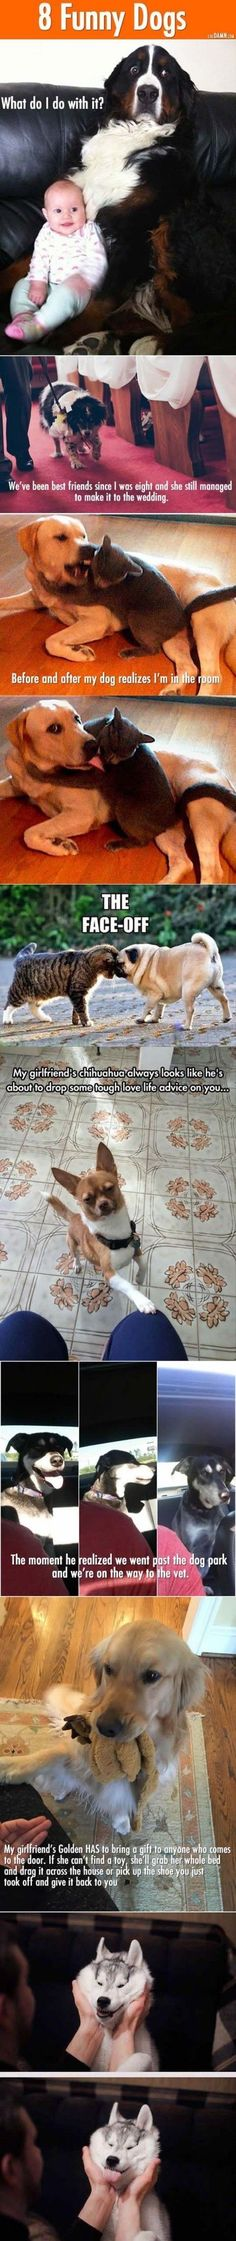 Barked At The Mailman Funny Cute Memes Adorable Dog Pets Meme Lol - This dog has some serious self control that will make you laugh